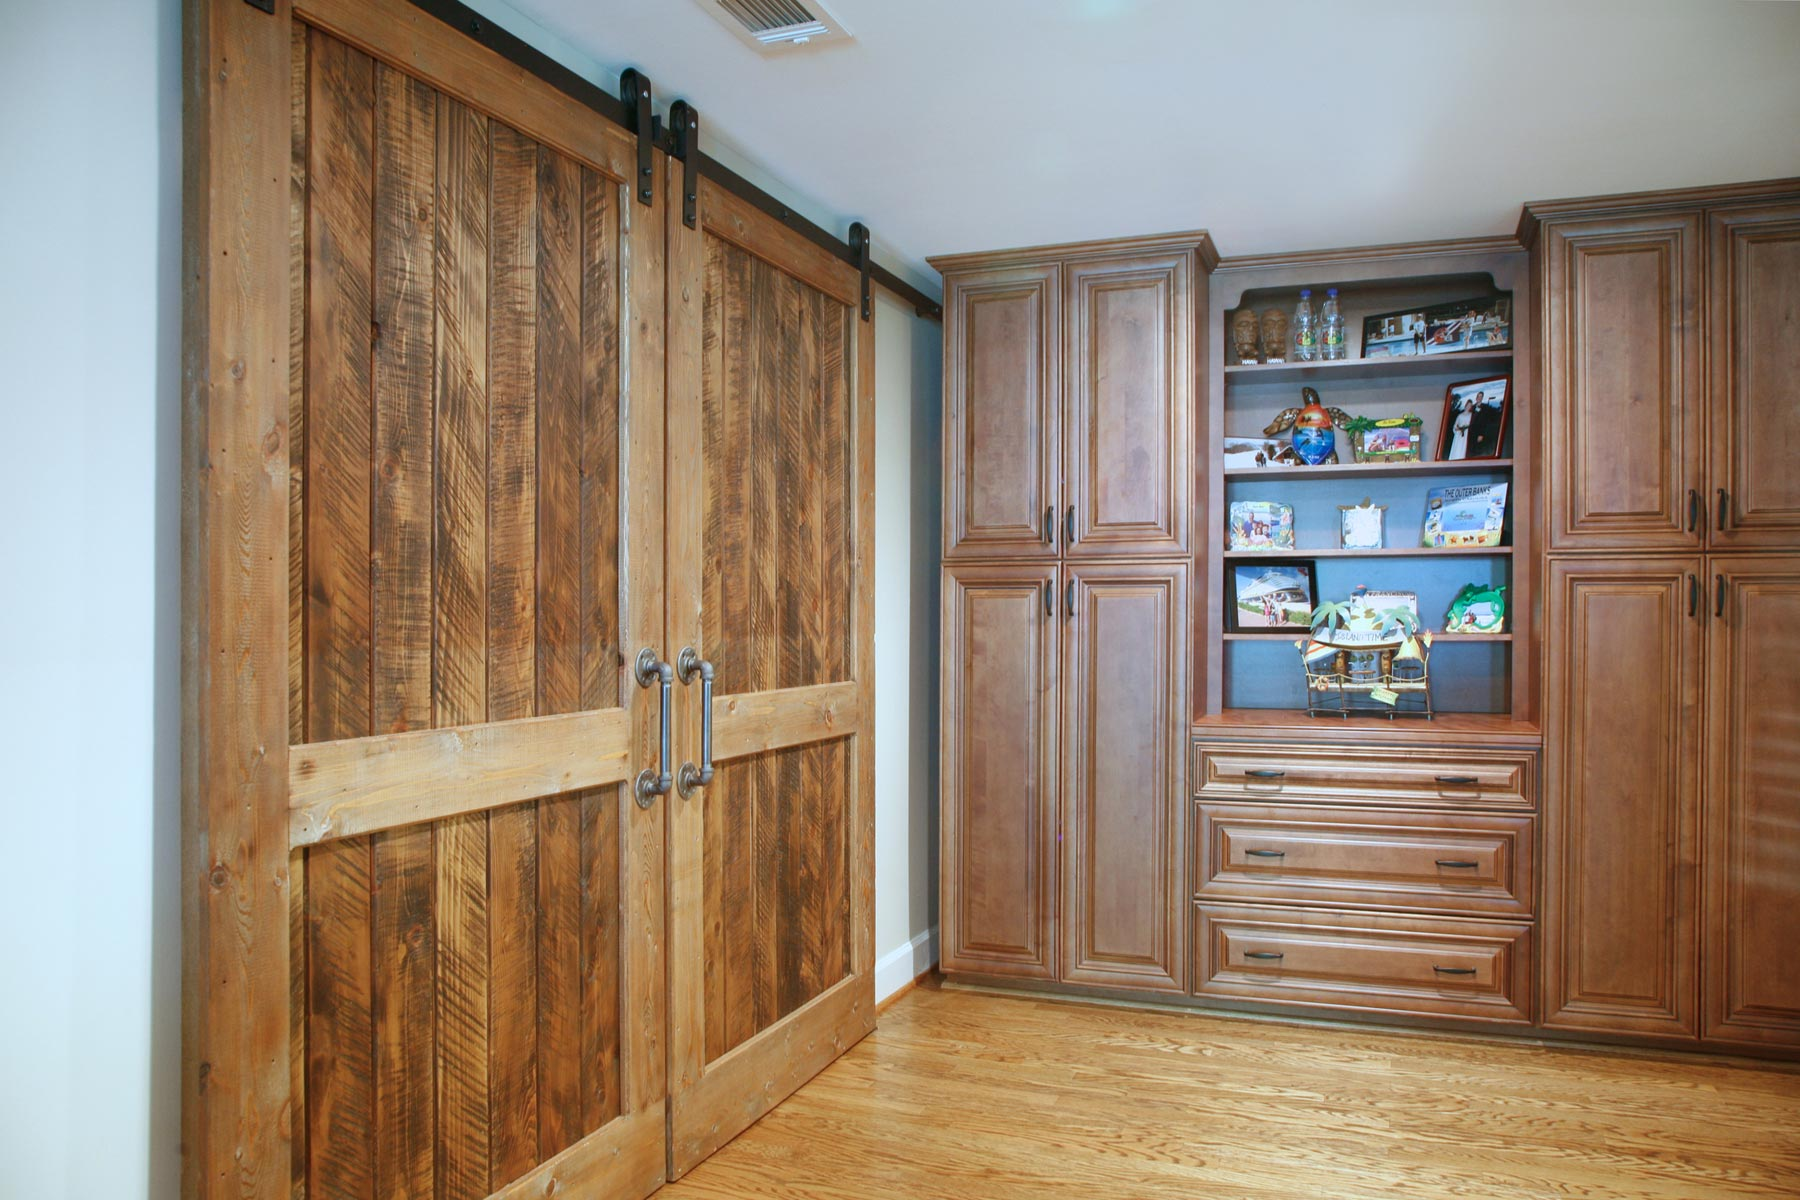 Built-in cabinets and barndoors leading to home theater